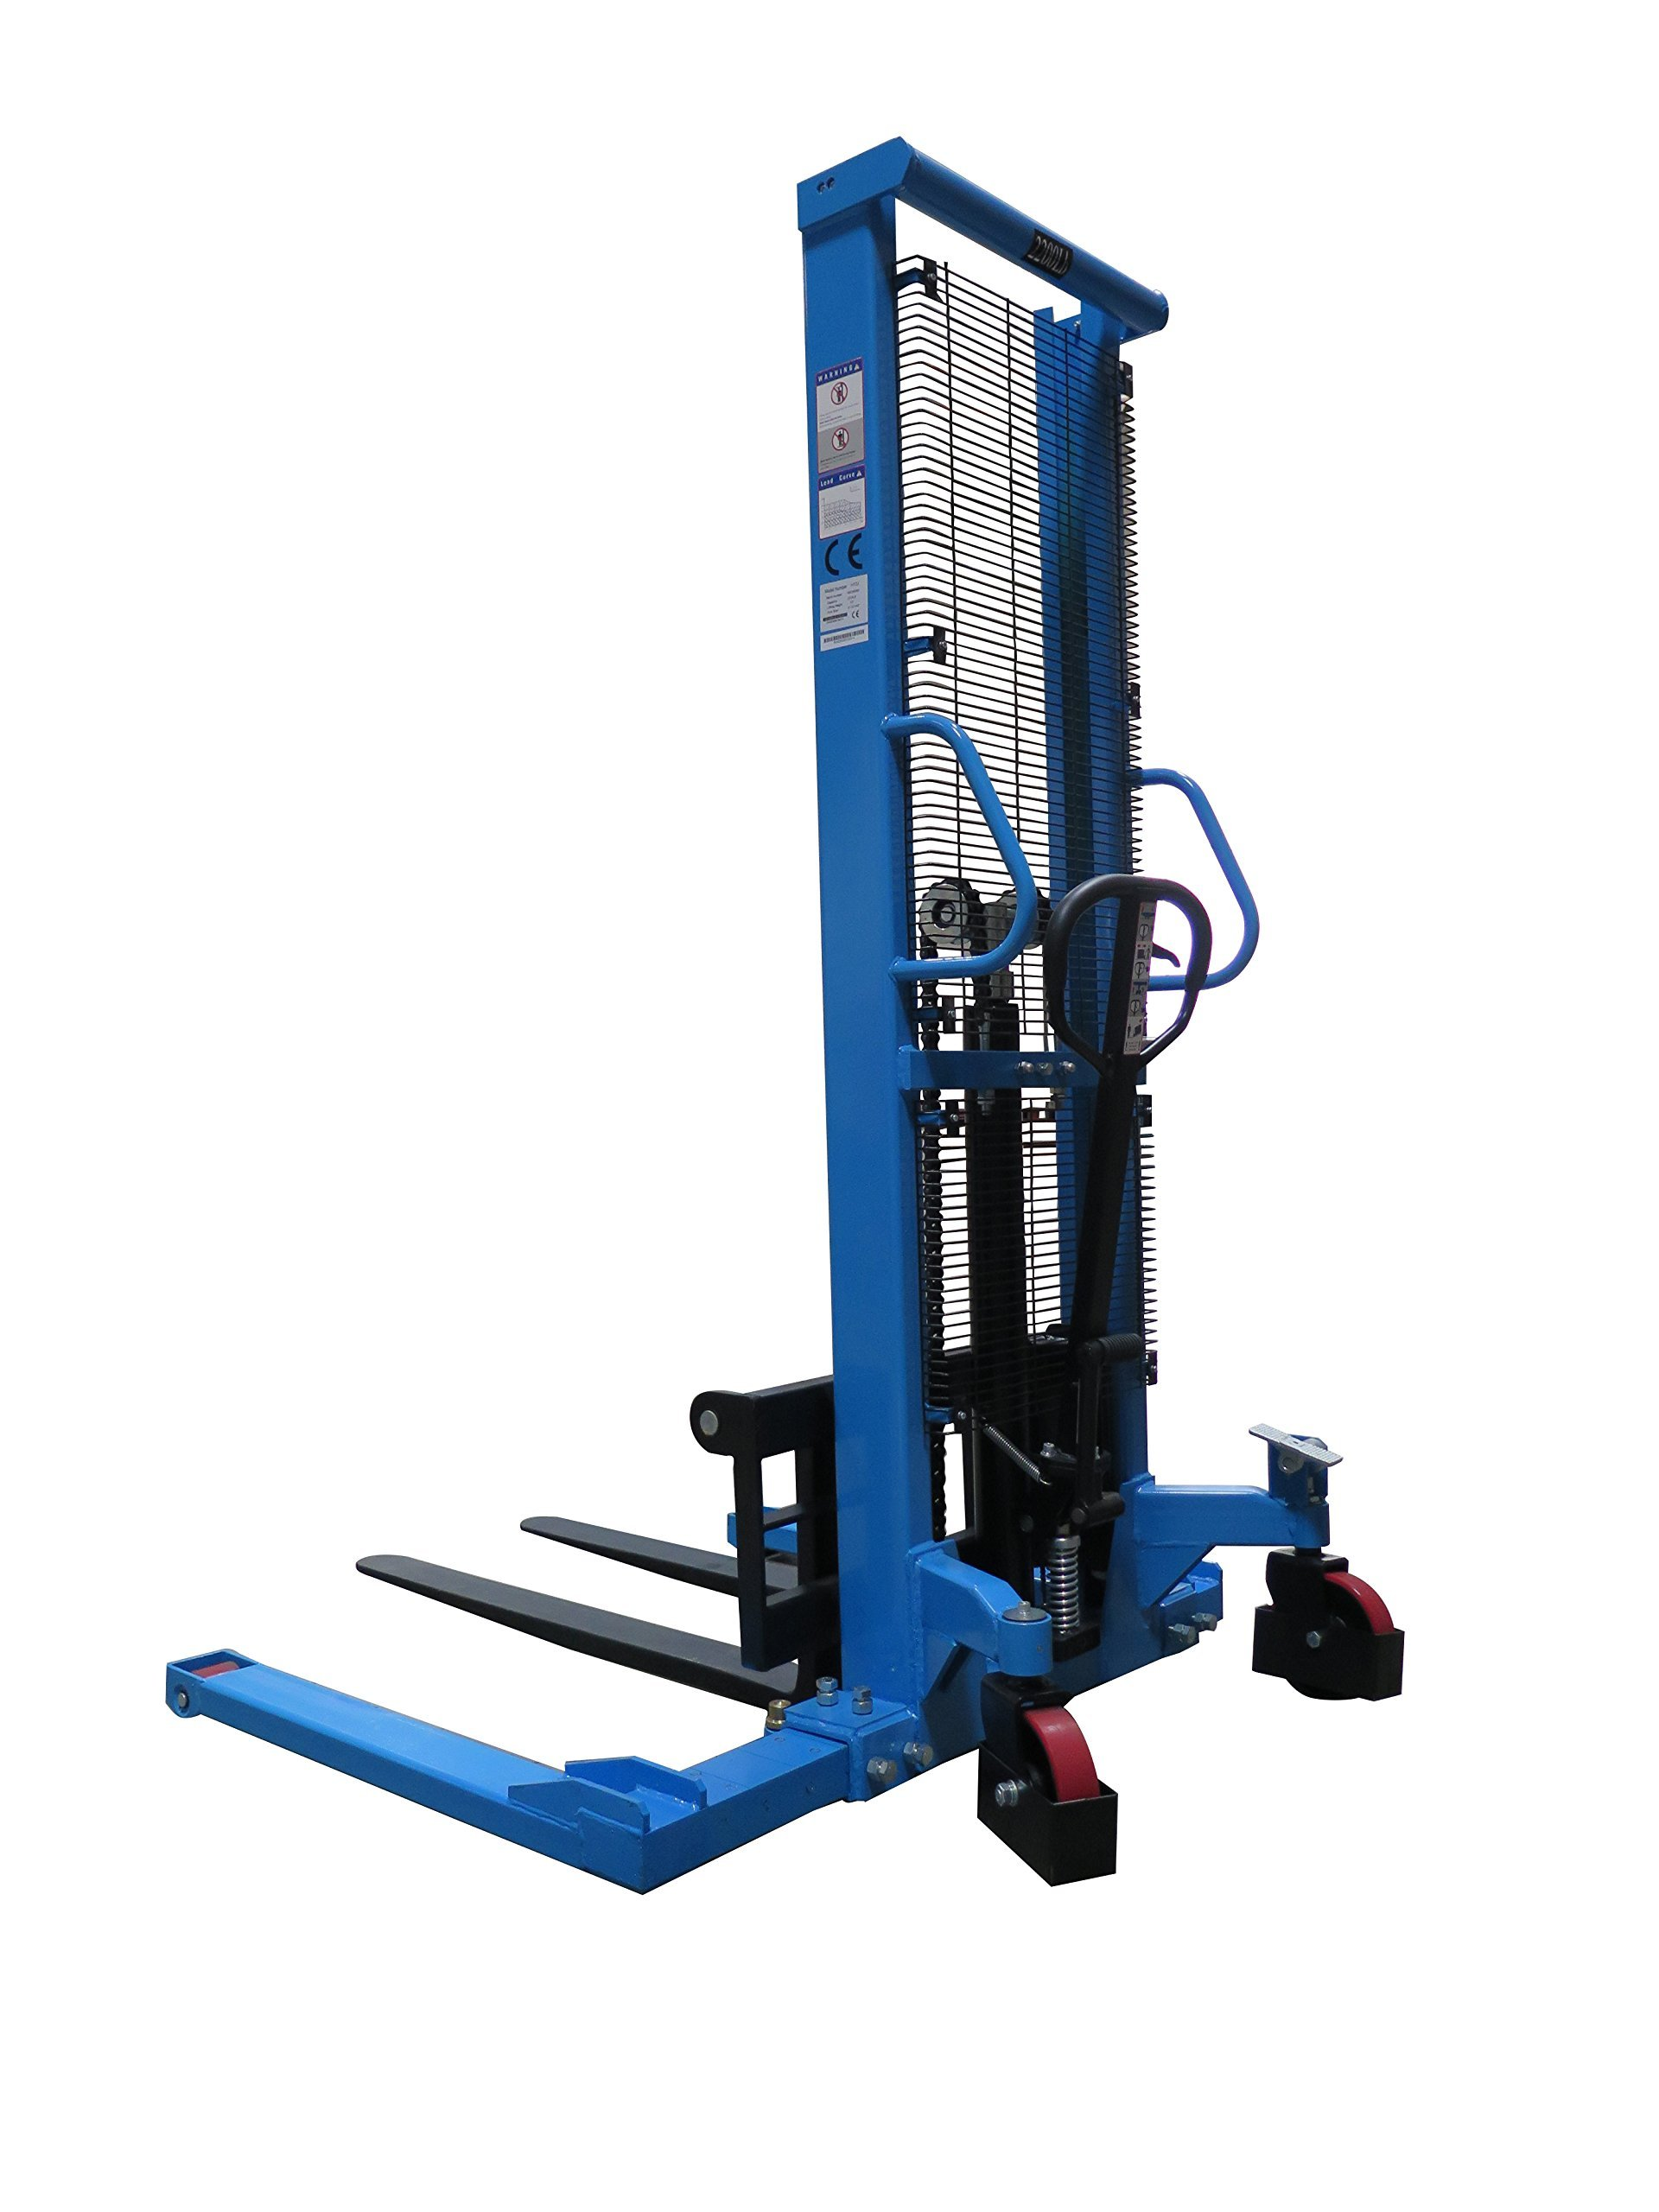 Eoslift Straddle Legs Hand Manual Stacker 2200LBS Capacity 63'' Lift Height by Eoslift